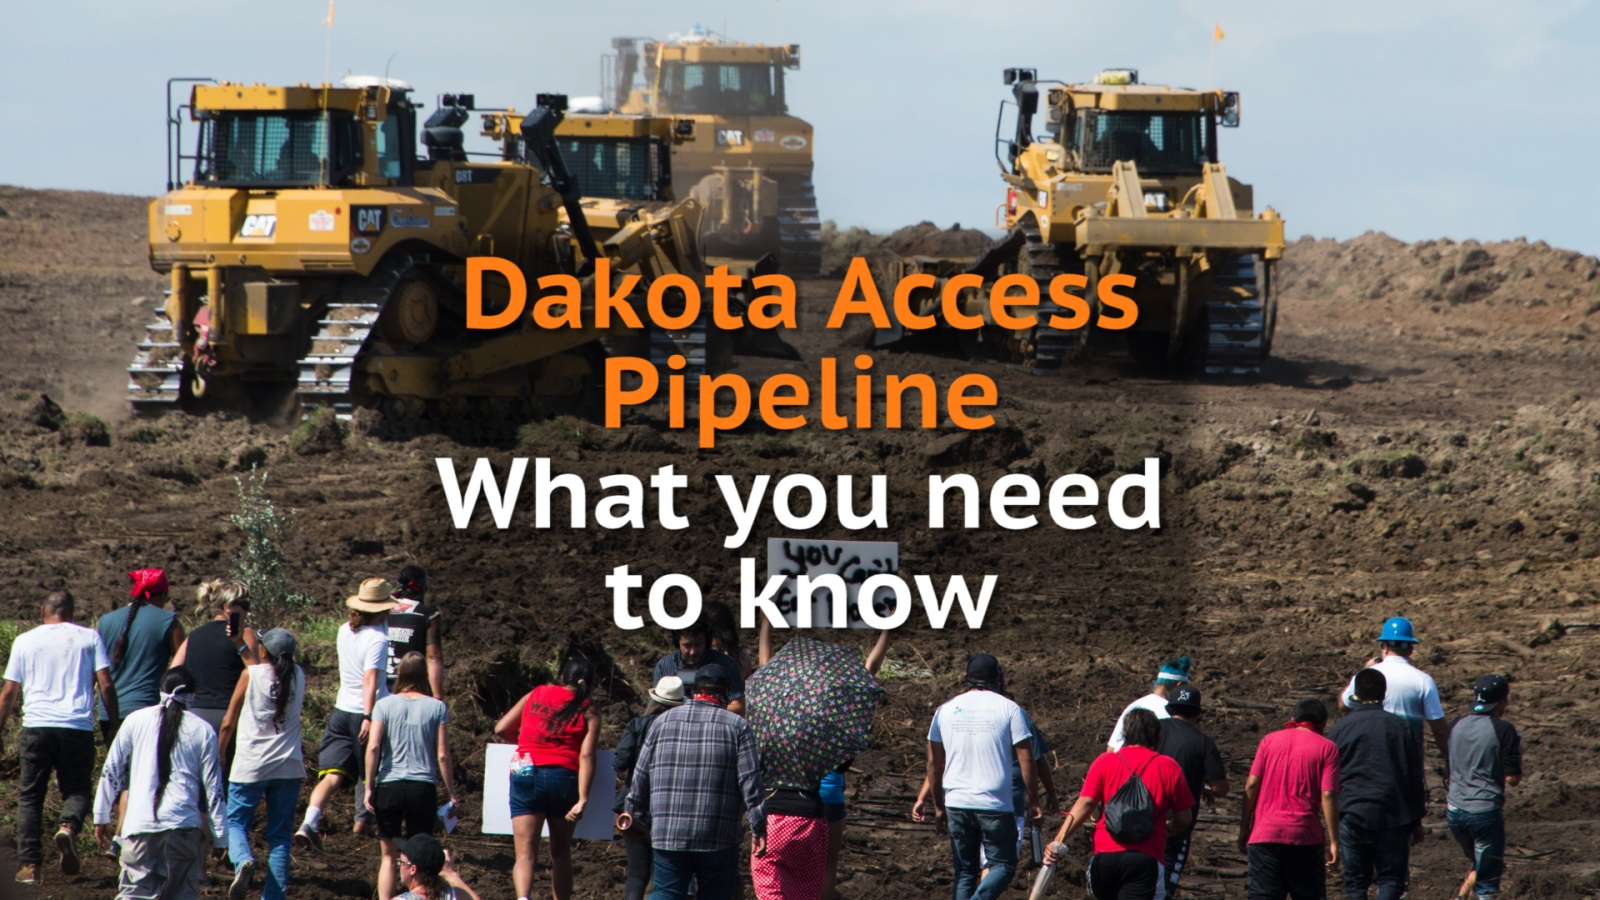 Dakota Access Pipeline: What you need to know